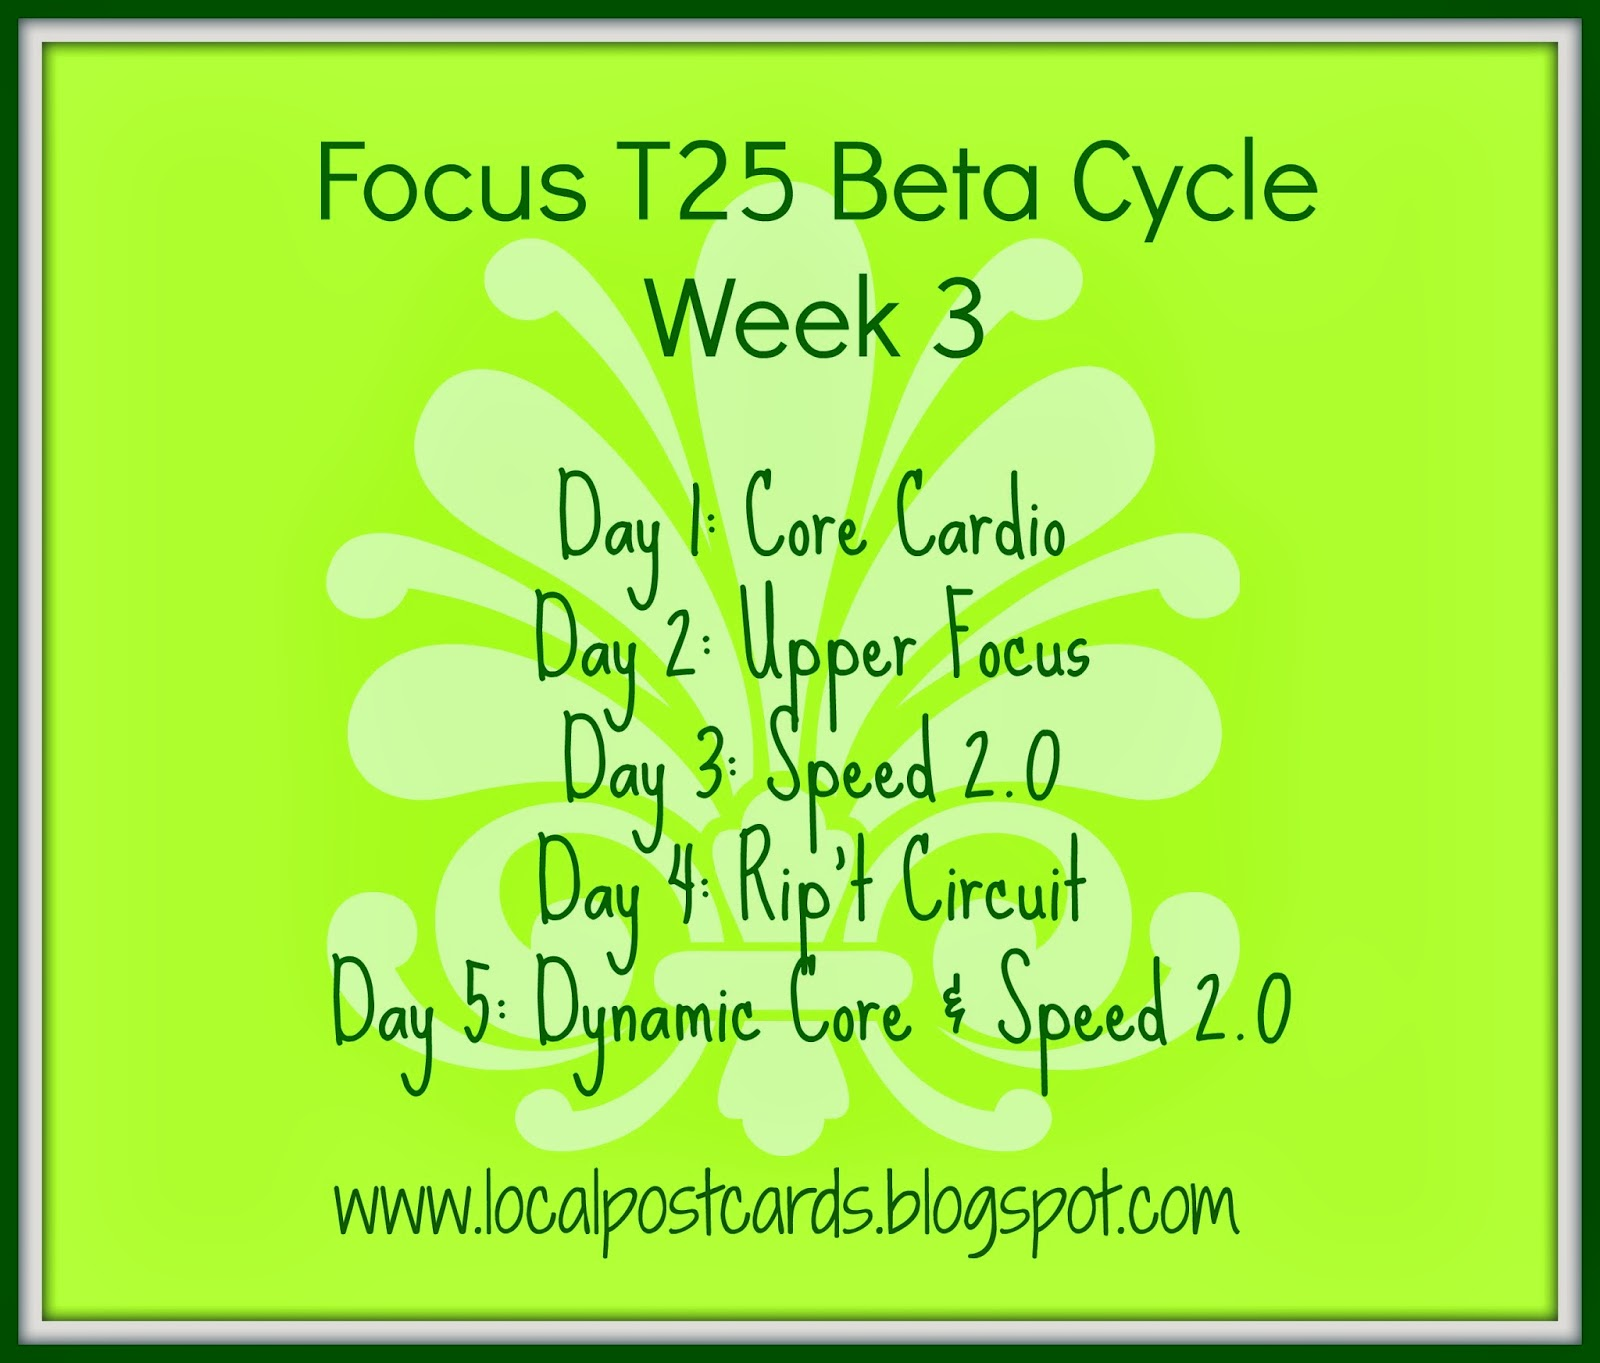 T25 Beta Schedule Week 3